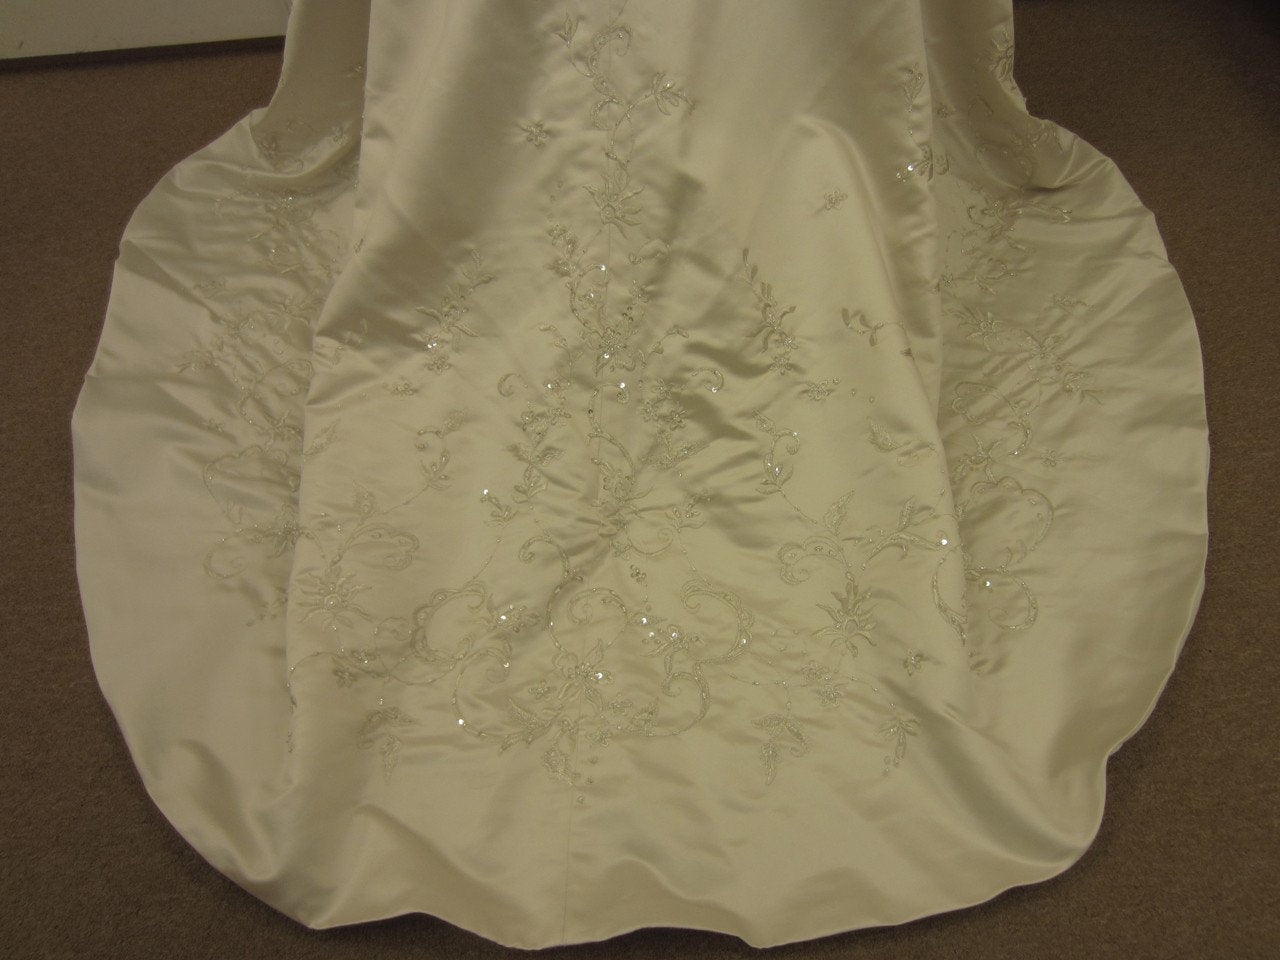 Allure 2176 Café/Silver size 10 In Stock Wedding Dress - Tom's Bridal